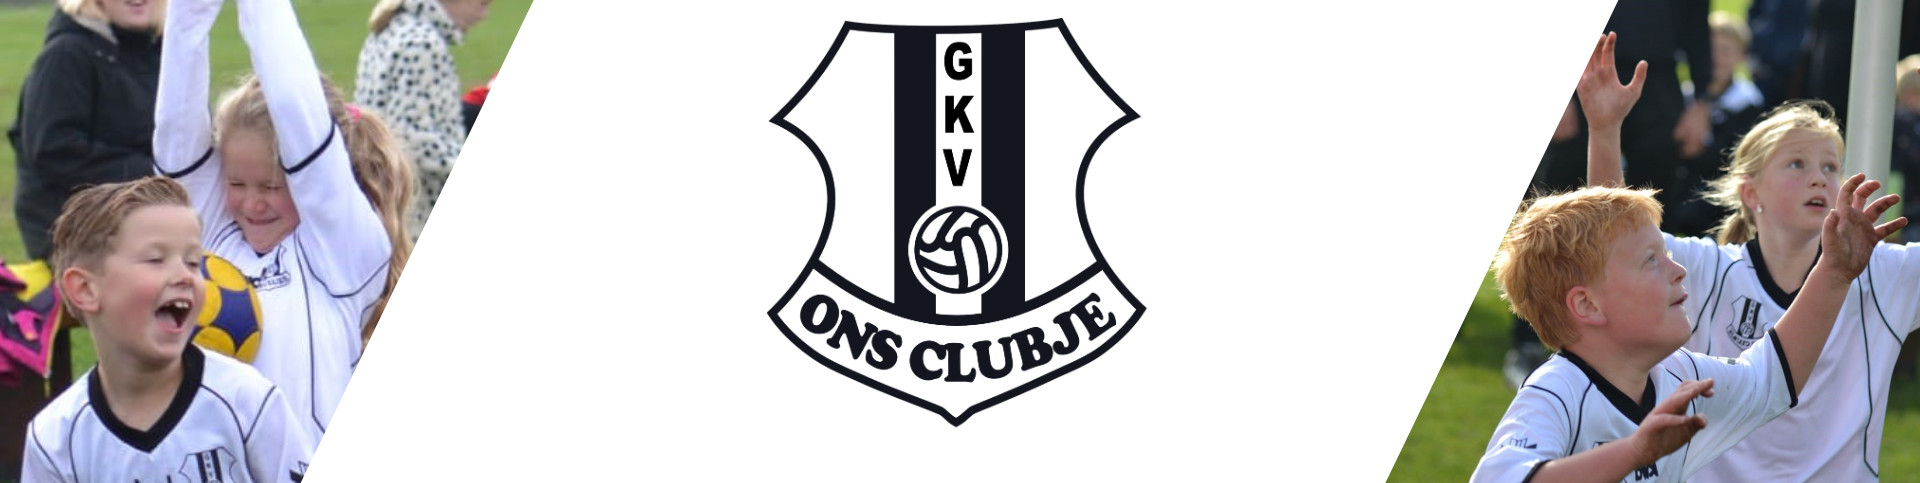 GKV Ons Clubje